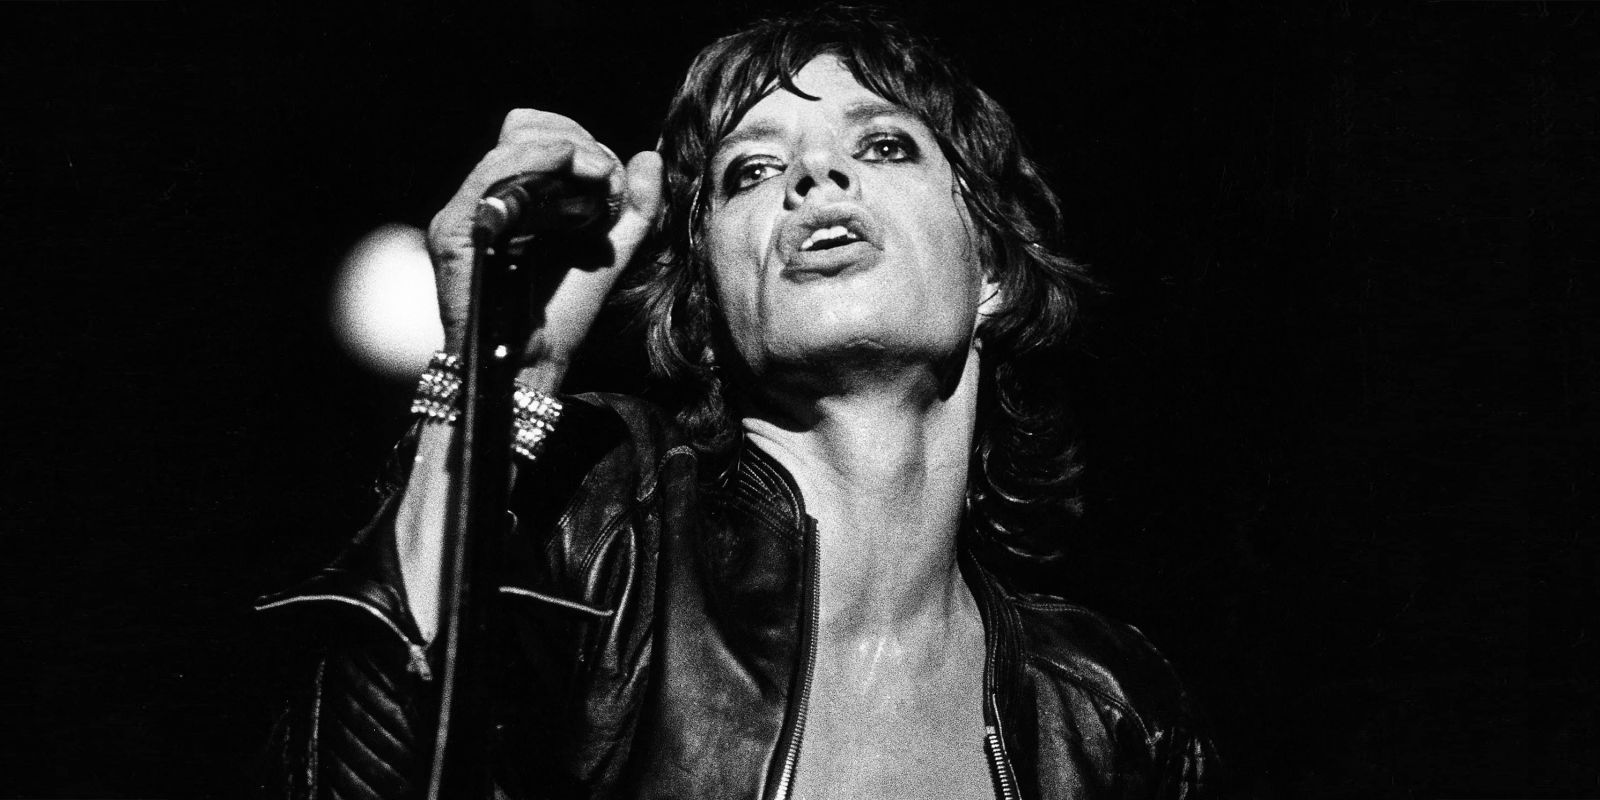 Mick Jagger: Mick Jagger Talk About Rolling Stones Exhibition And